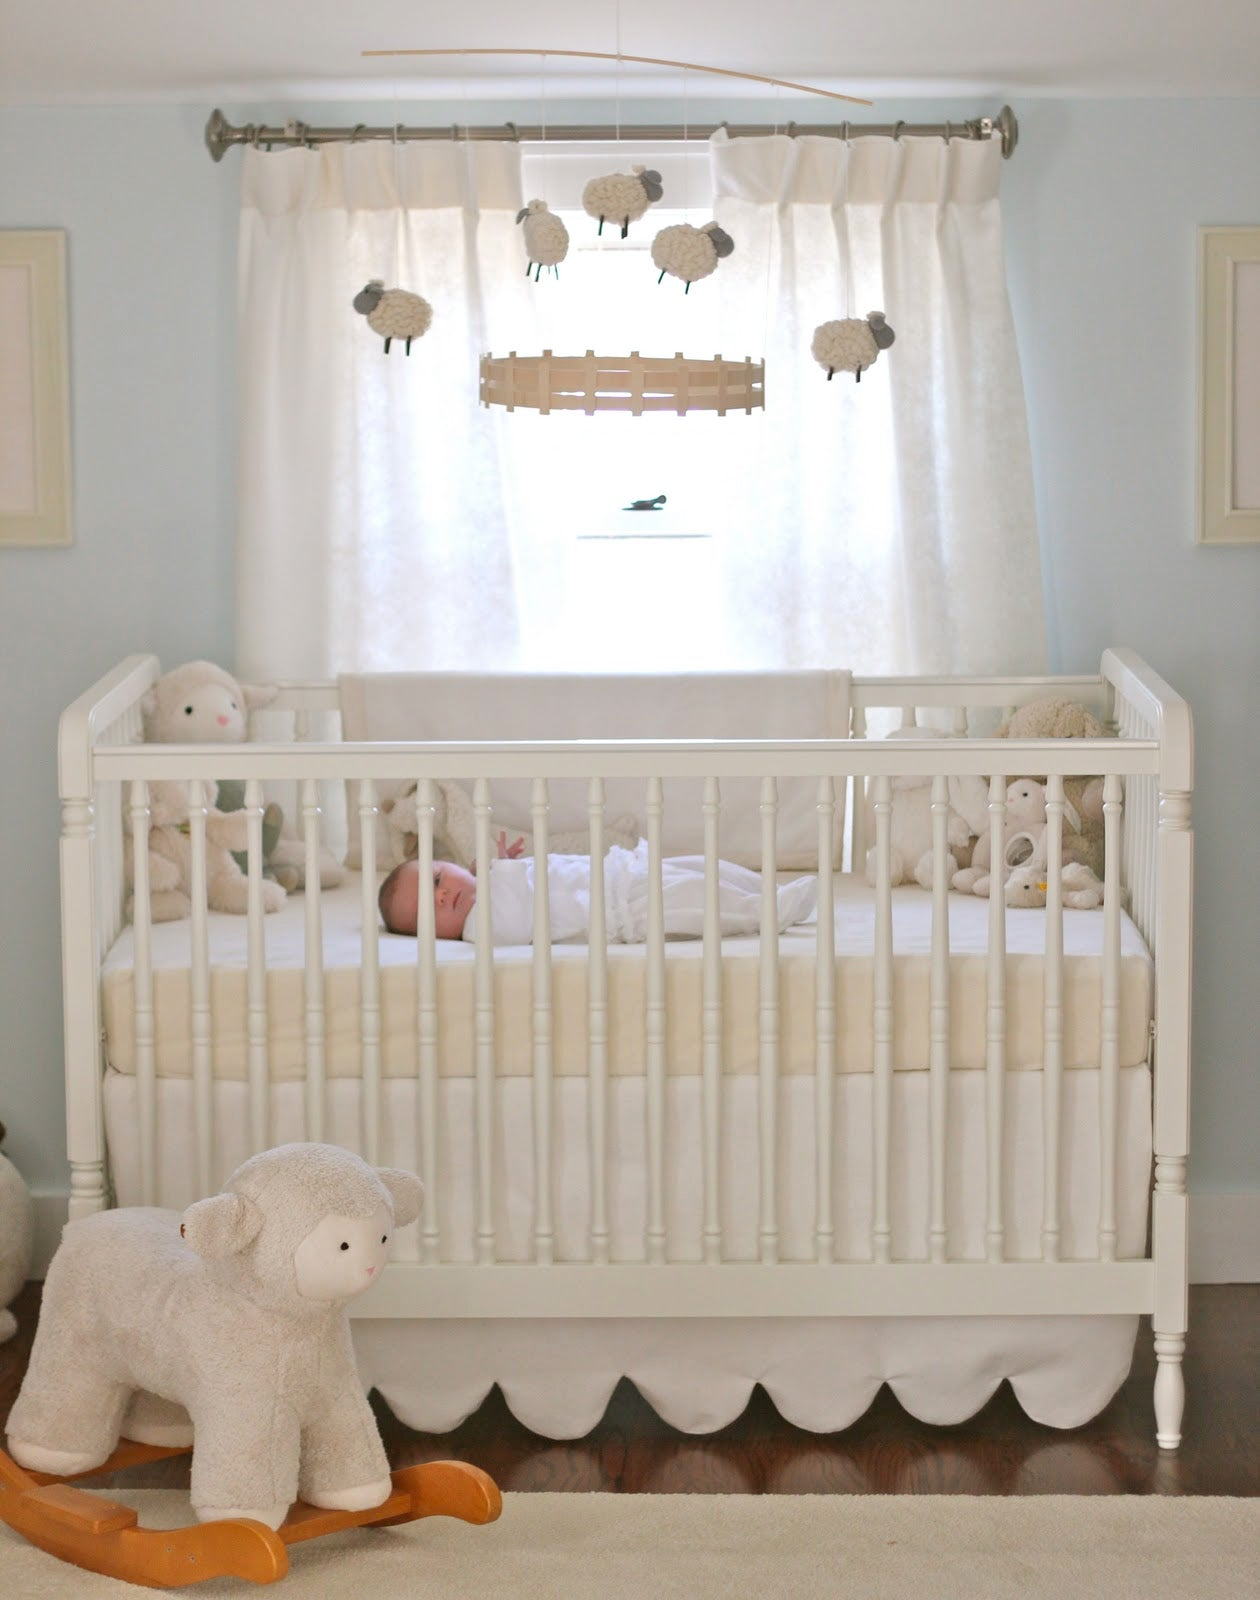 Living Room Pottery Barn Baby Room home decor tagged baby room ideas weedecor lamb nursery